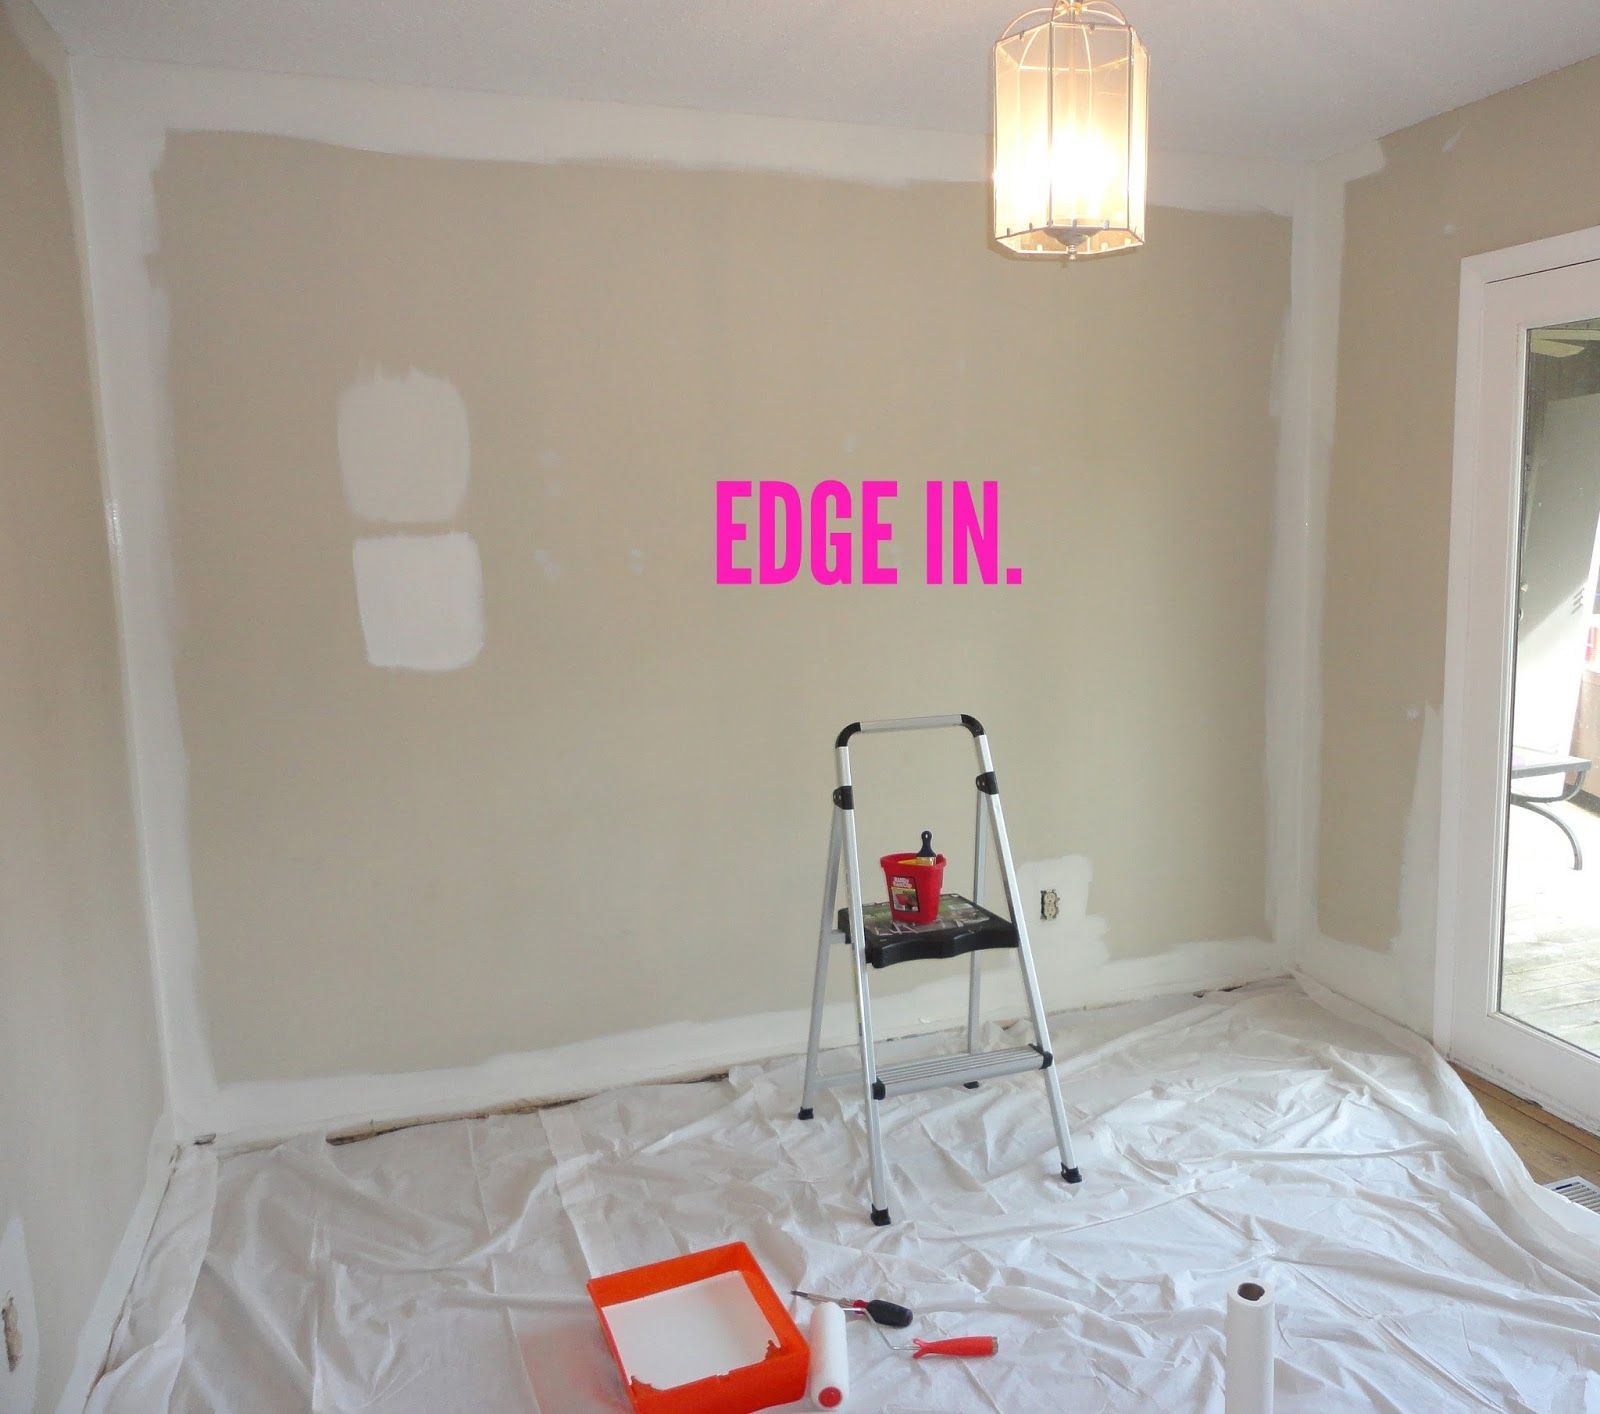 Livelovediy How To Paint A Room Small Room Paint Steps To Painting A Room Room Paint